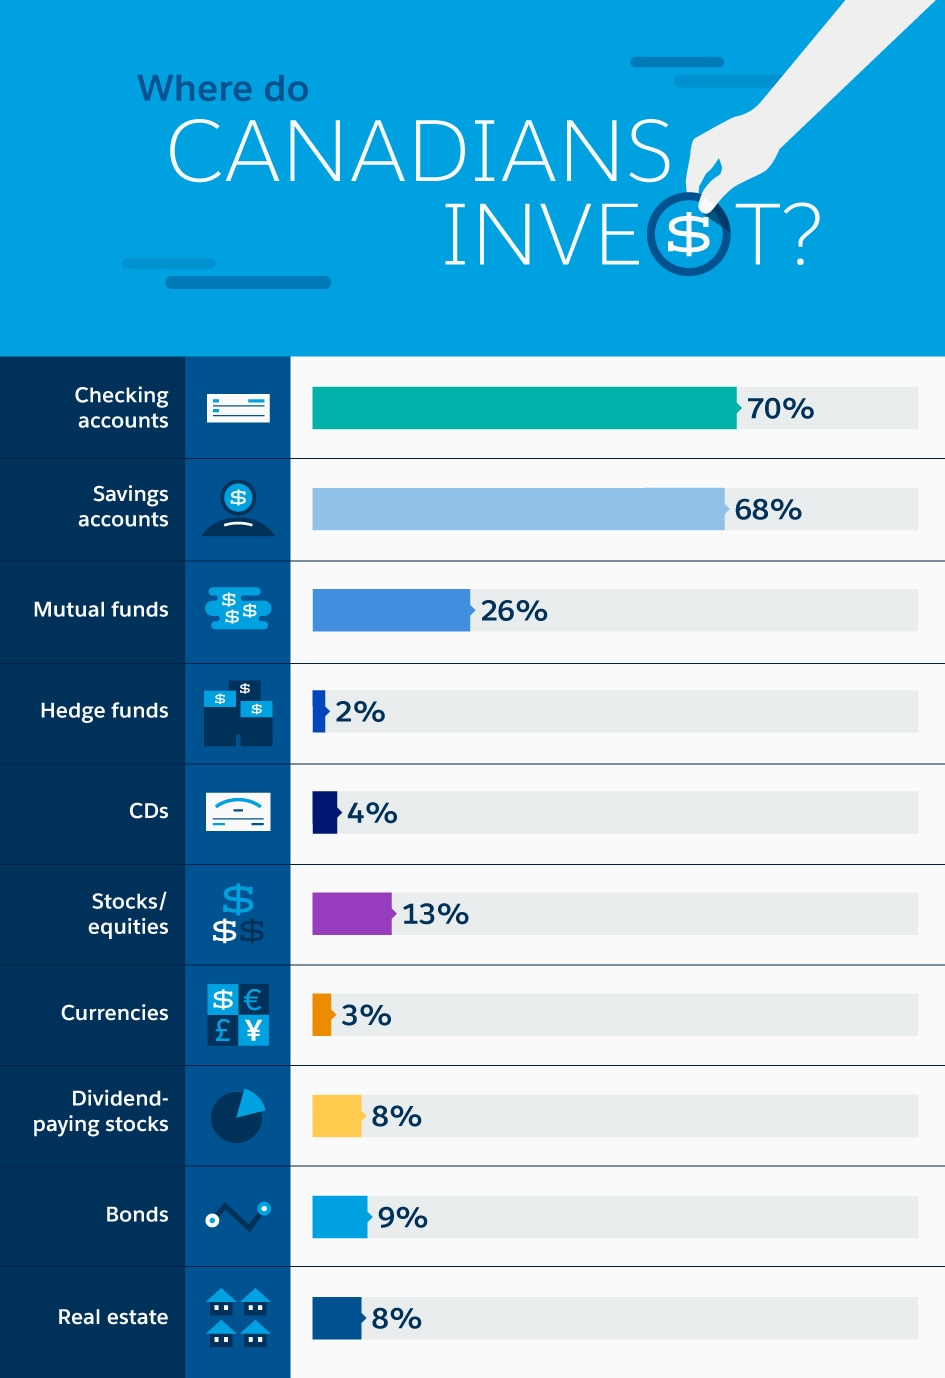 Where do canadians invest